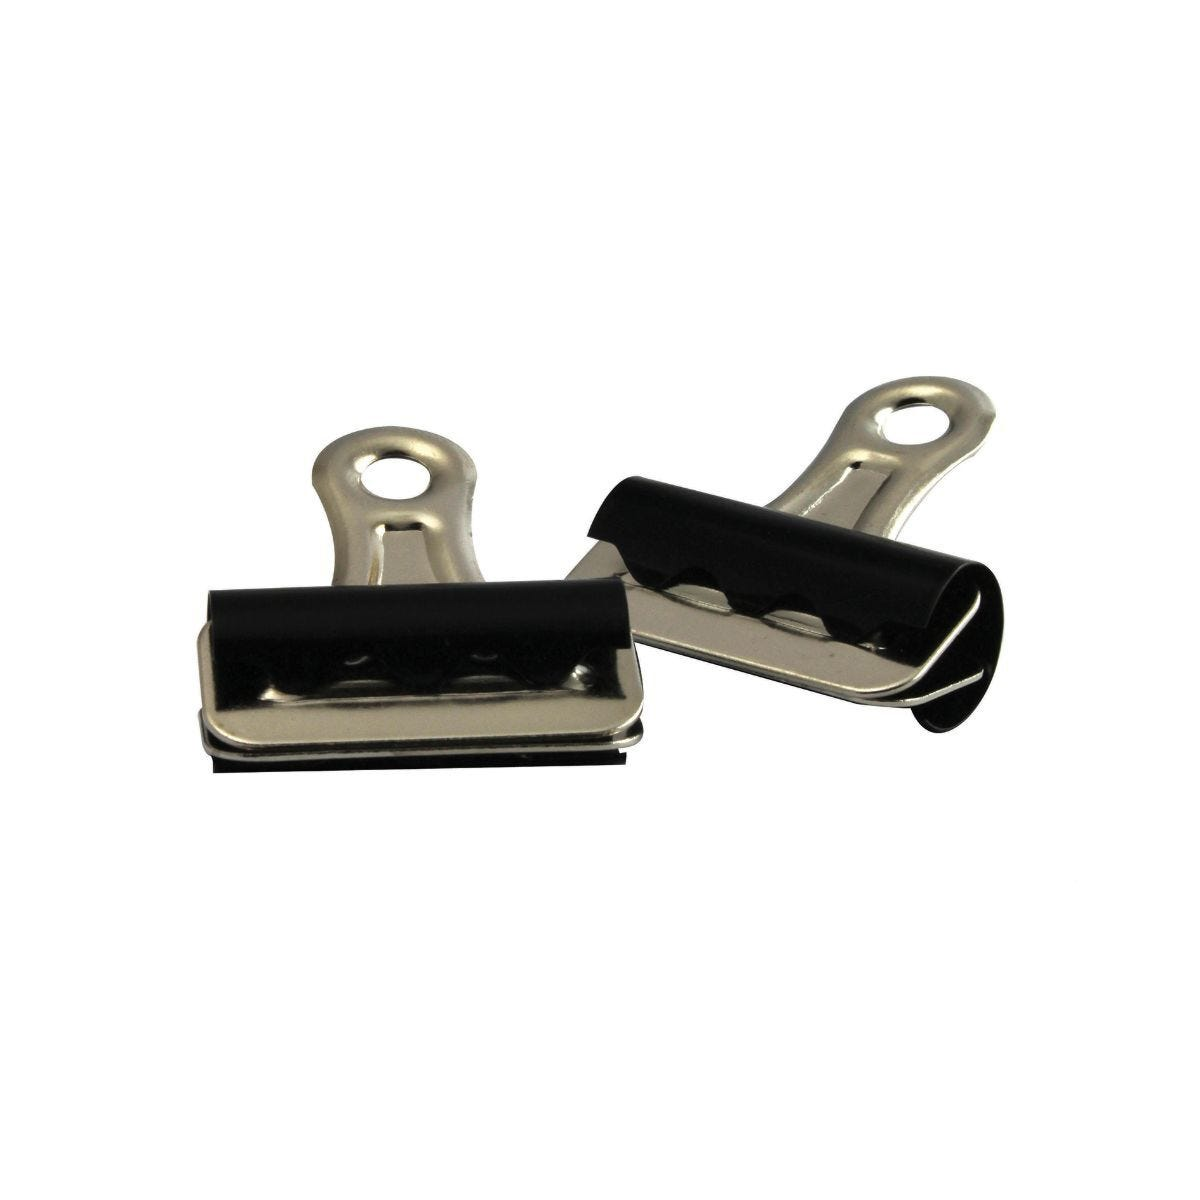 Q-Connect Grip Clip 32mm Pack of 10